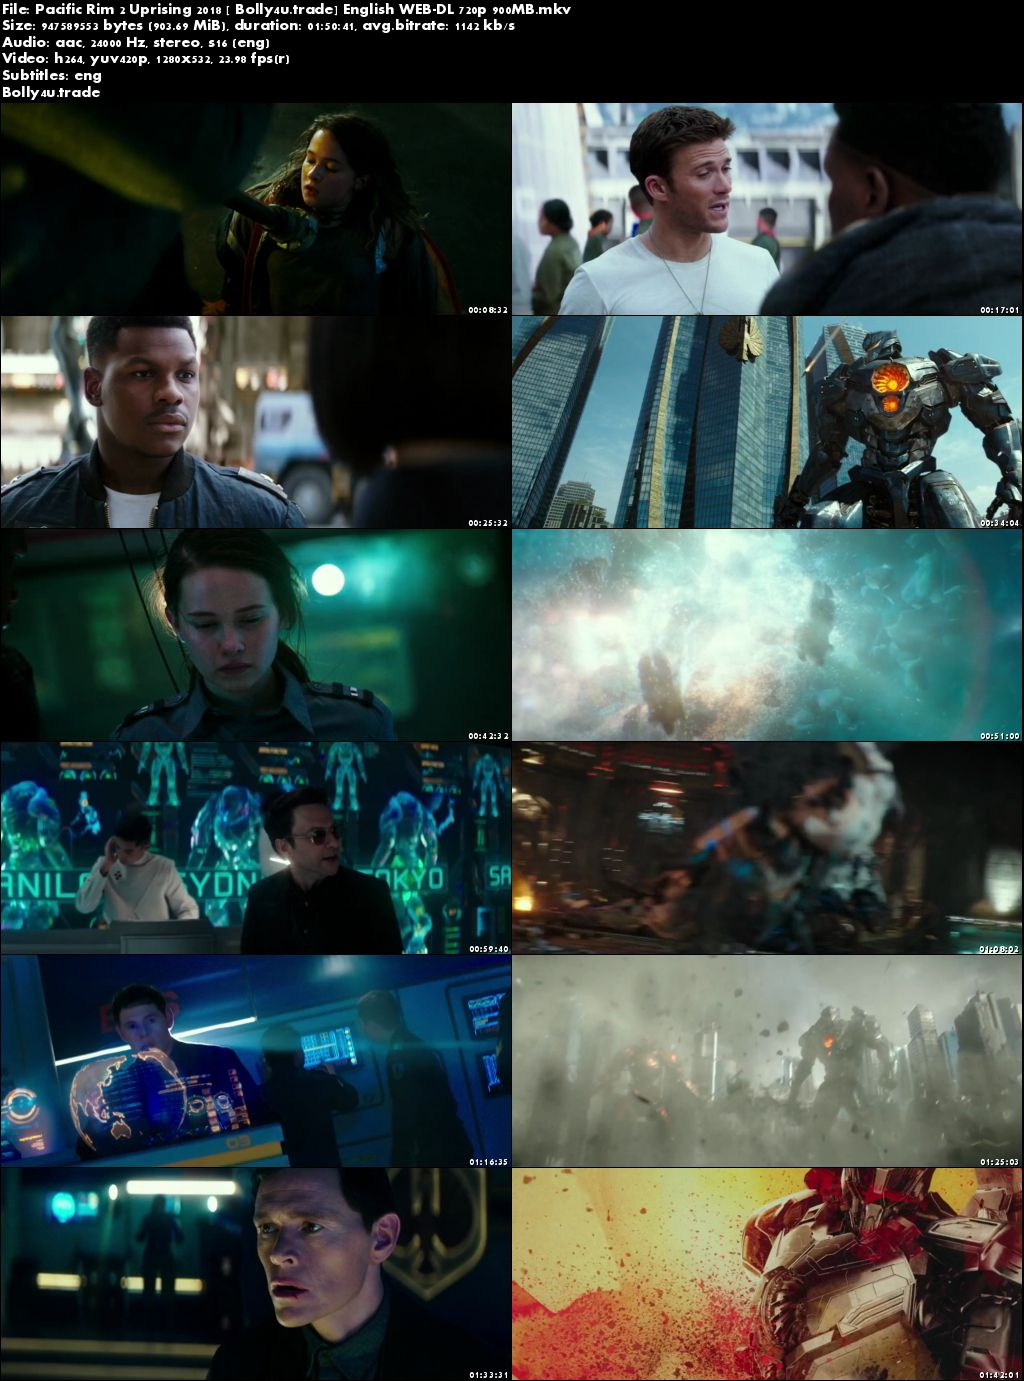 Pacific Rim 2 Uprising 2018 WEB-DL 900MB English 720p ESub Download